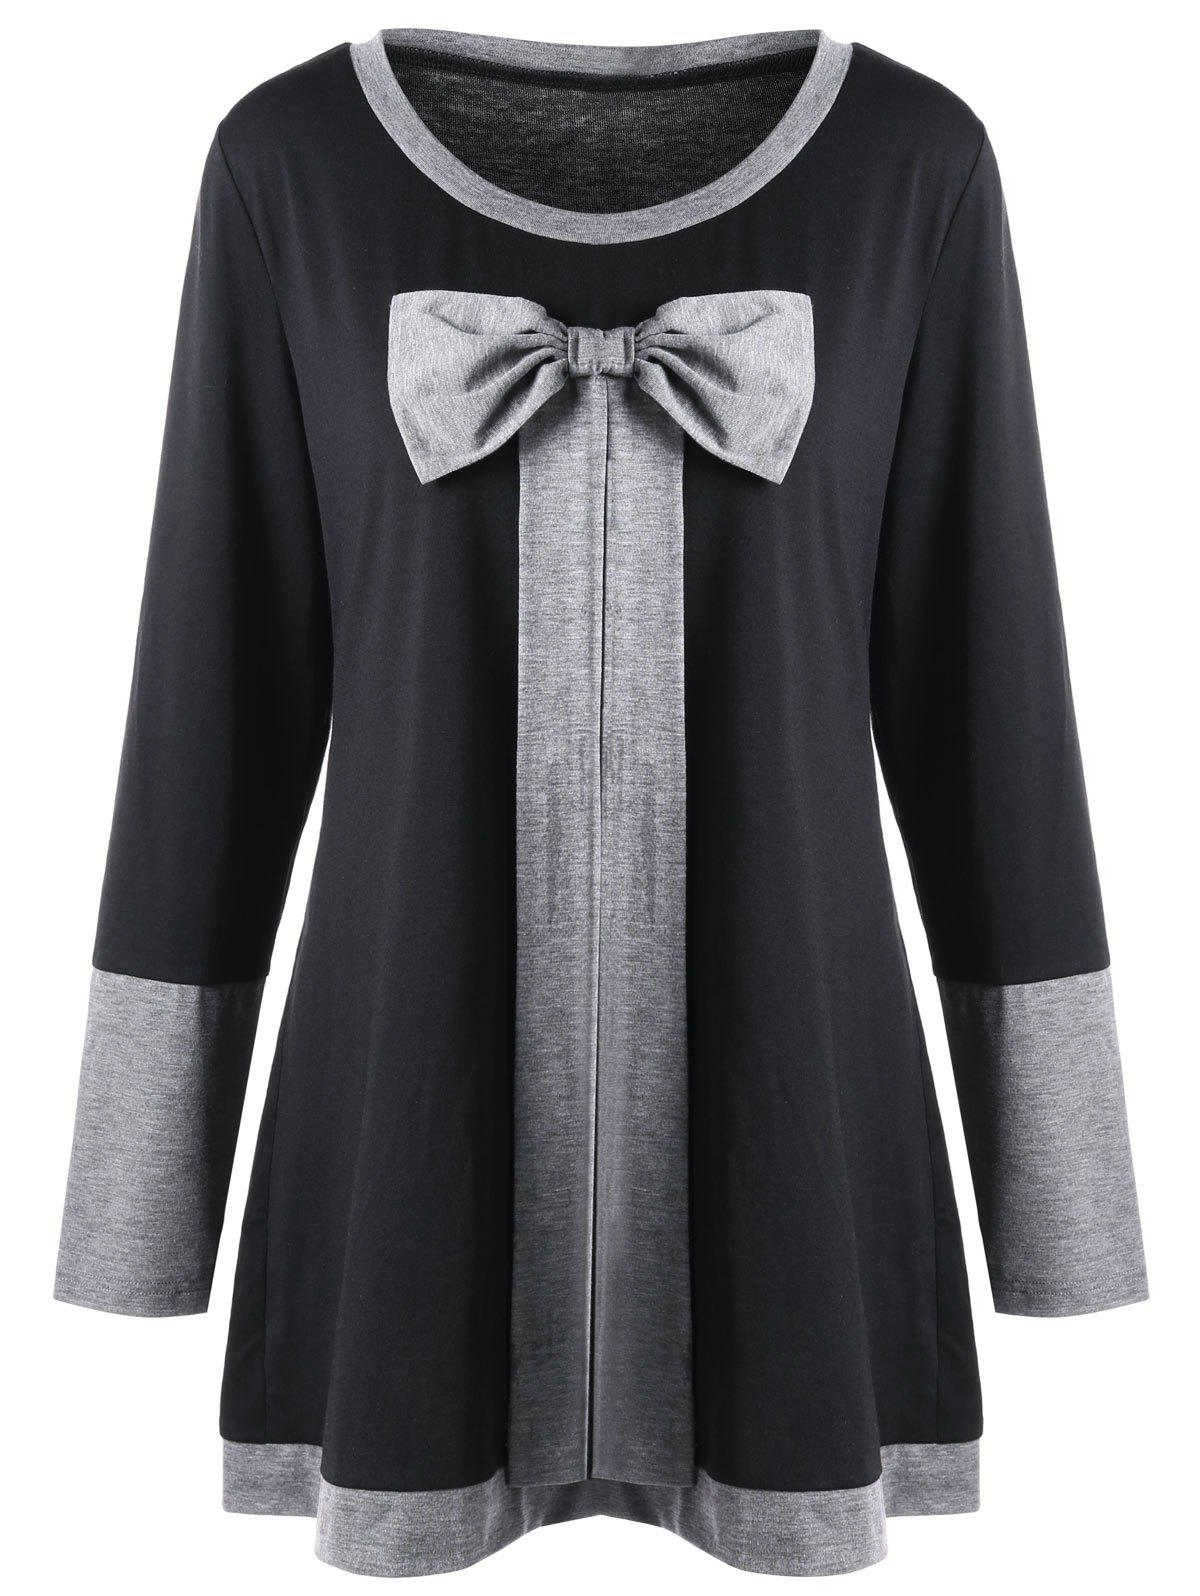 Plus Size Bowknot Embellished Tunic Top side bowknot embellished plus size sweatshirts page 2